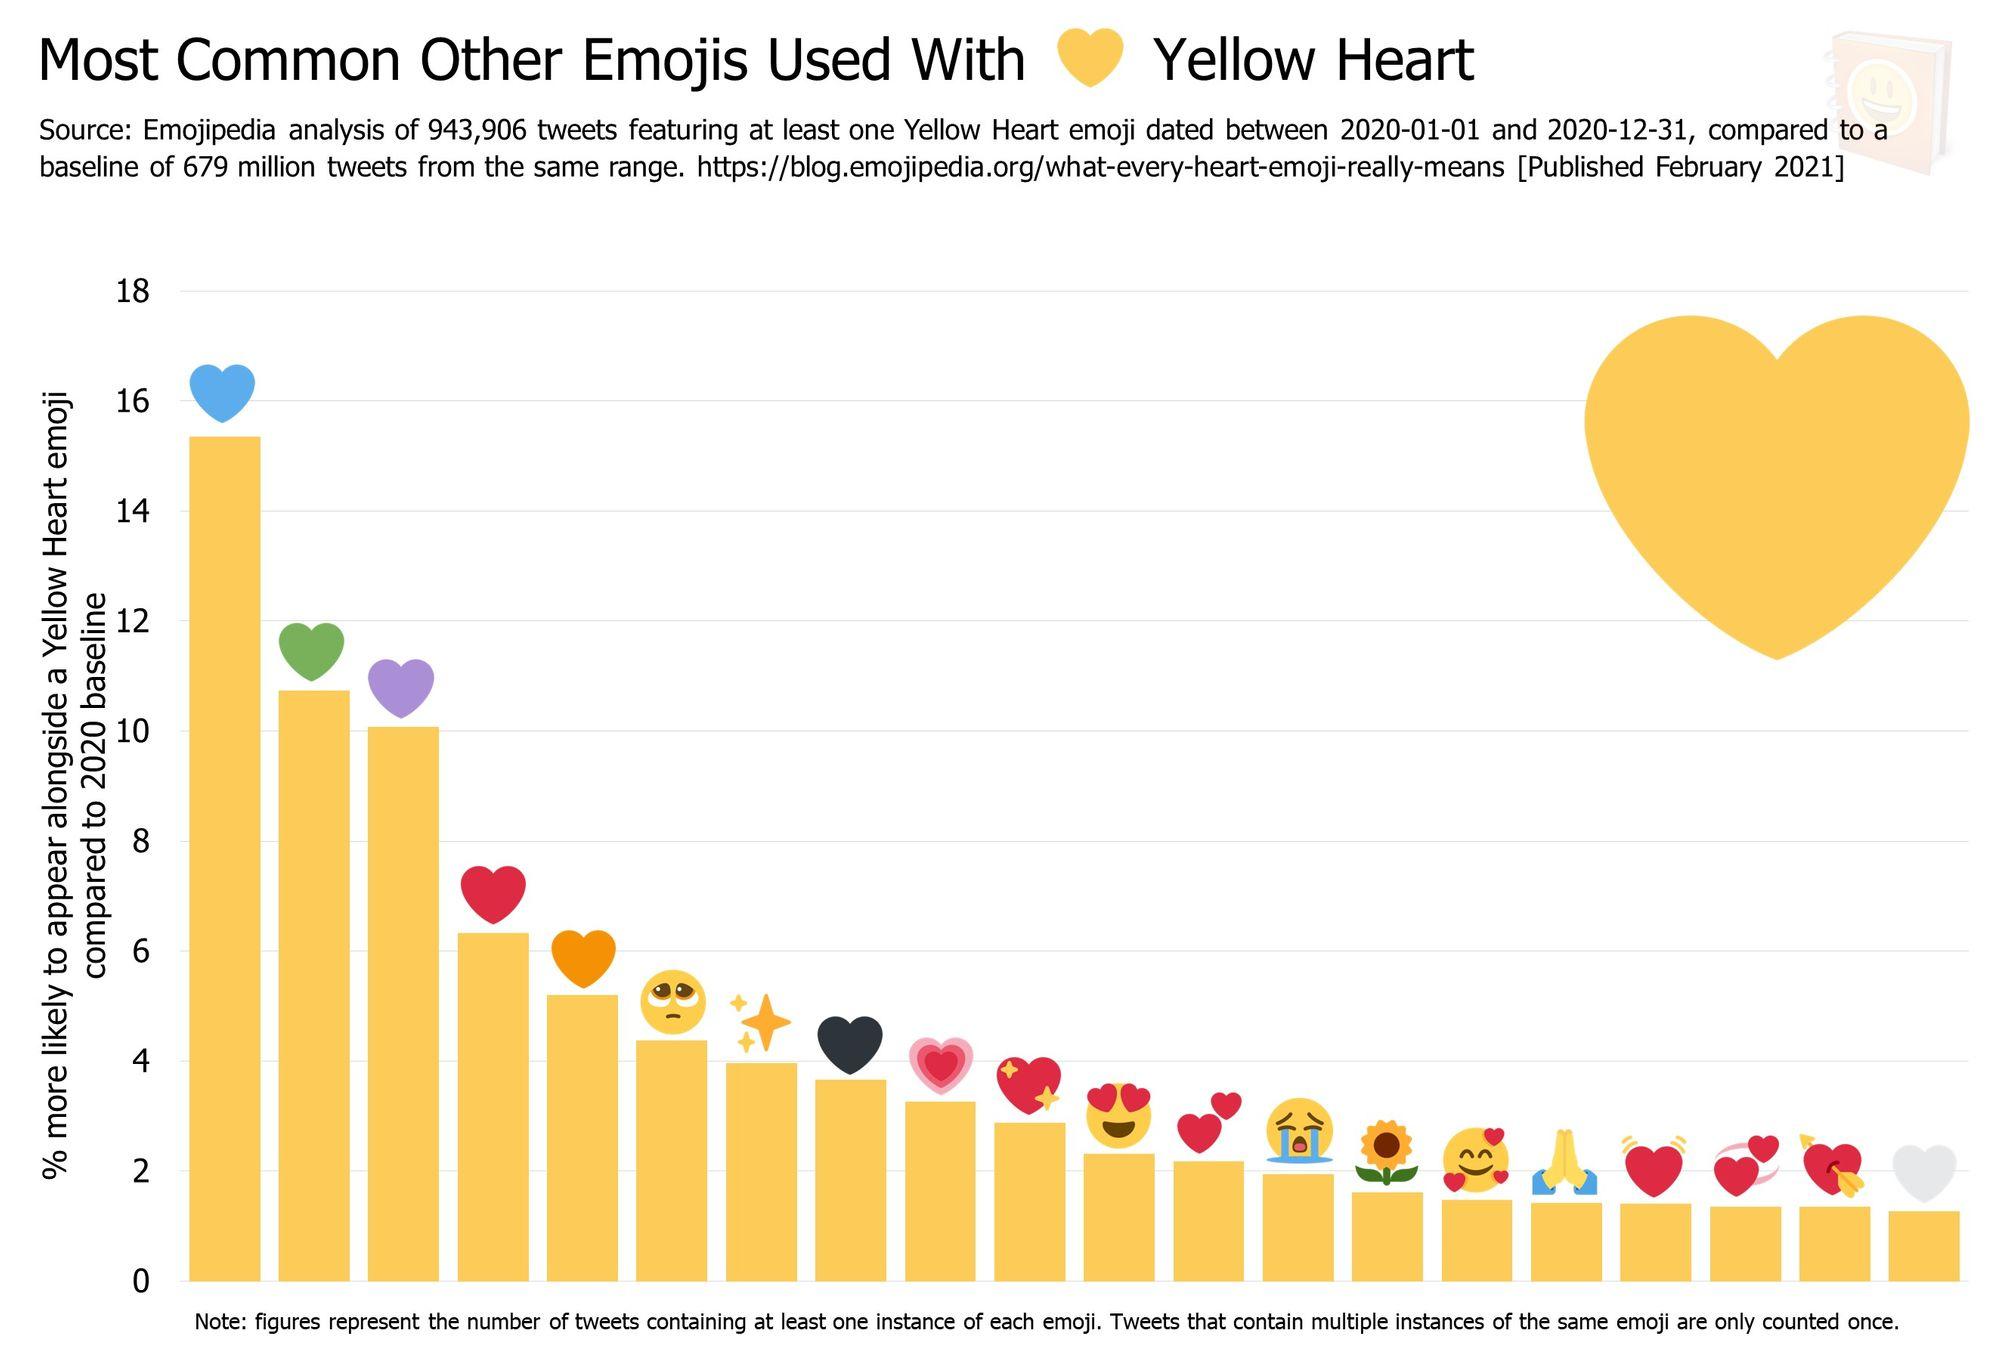 Emojipedia-Blog---What-Every-Heart-Emoji-Really-Means---Most-Common-Other-Emojis-Used-With-------Yellow-Heart